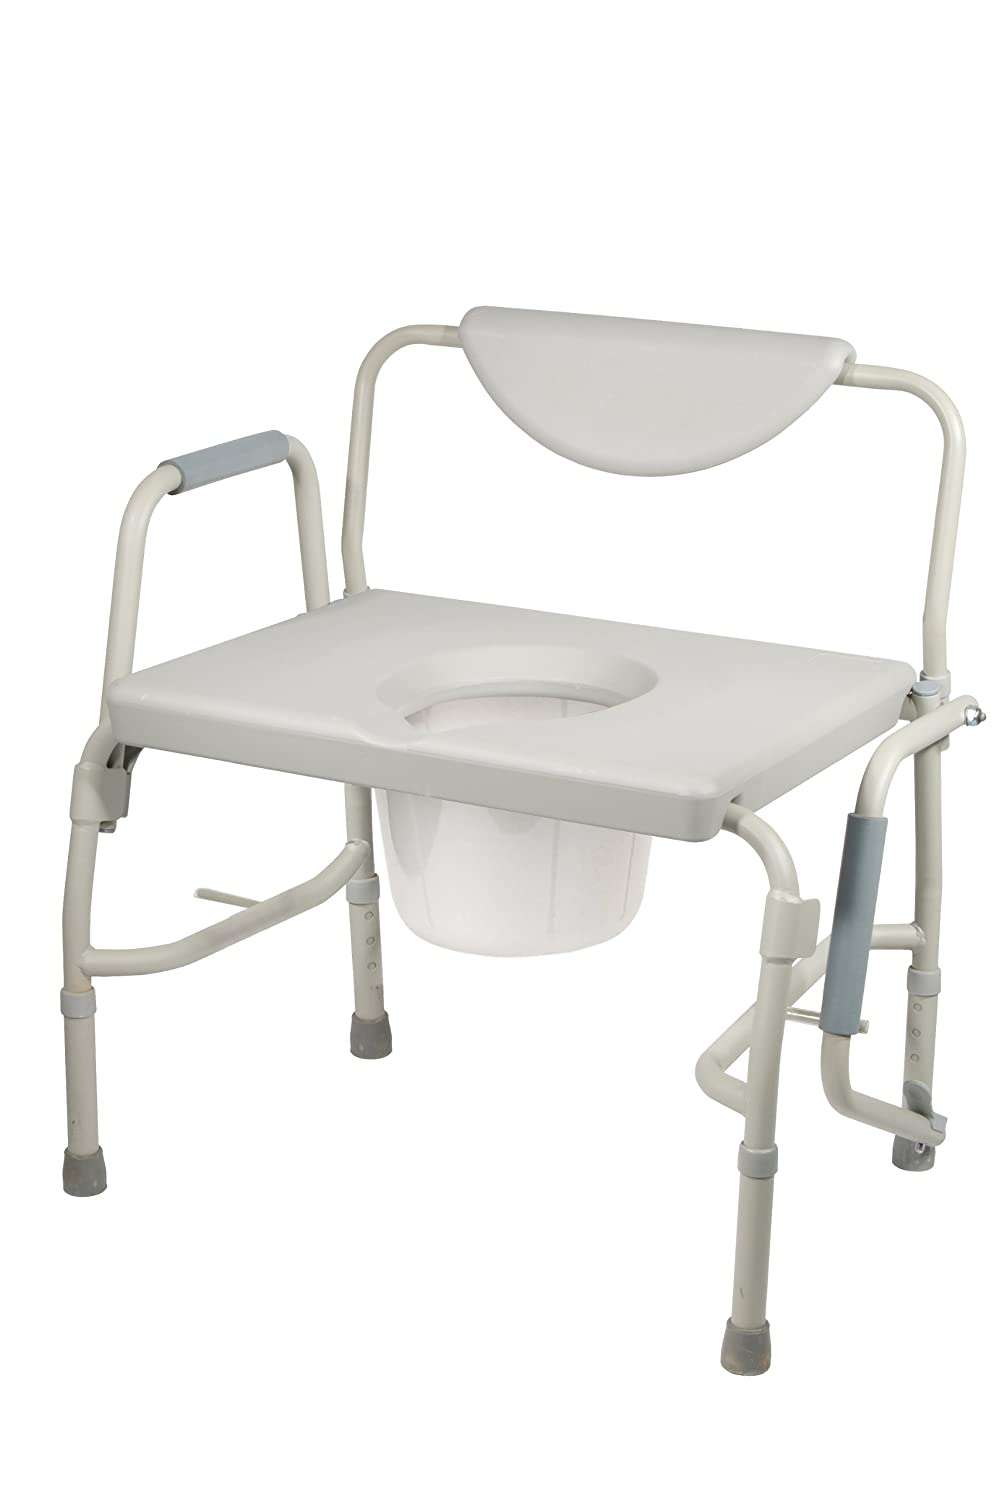 Amazon.com: Drive Medical Deluxe Bariatric Drop-Arm Commode, Grey ...